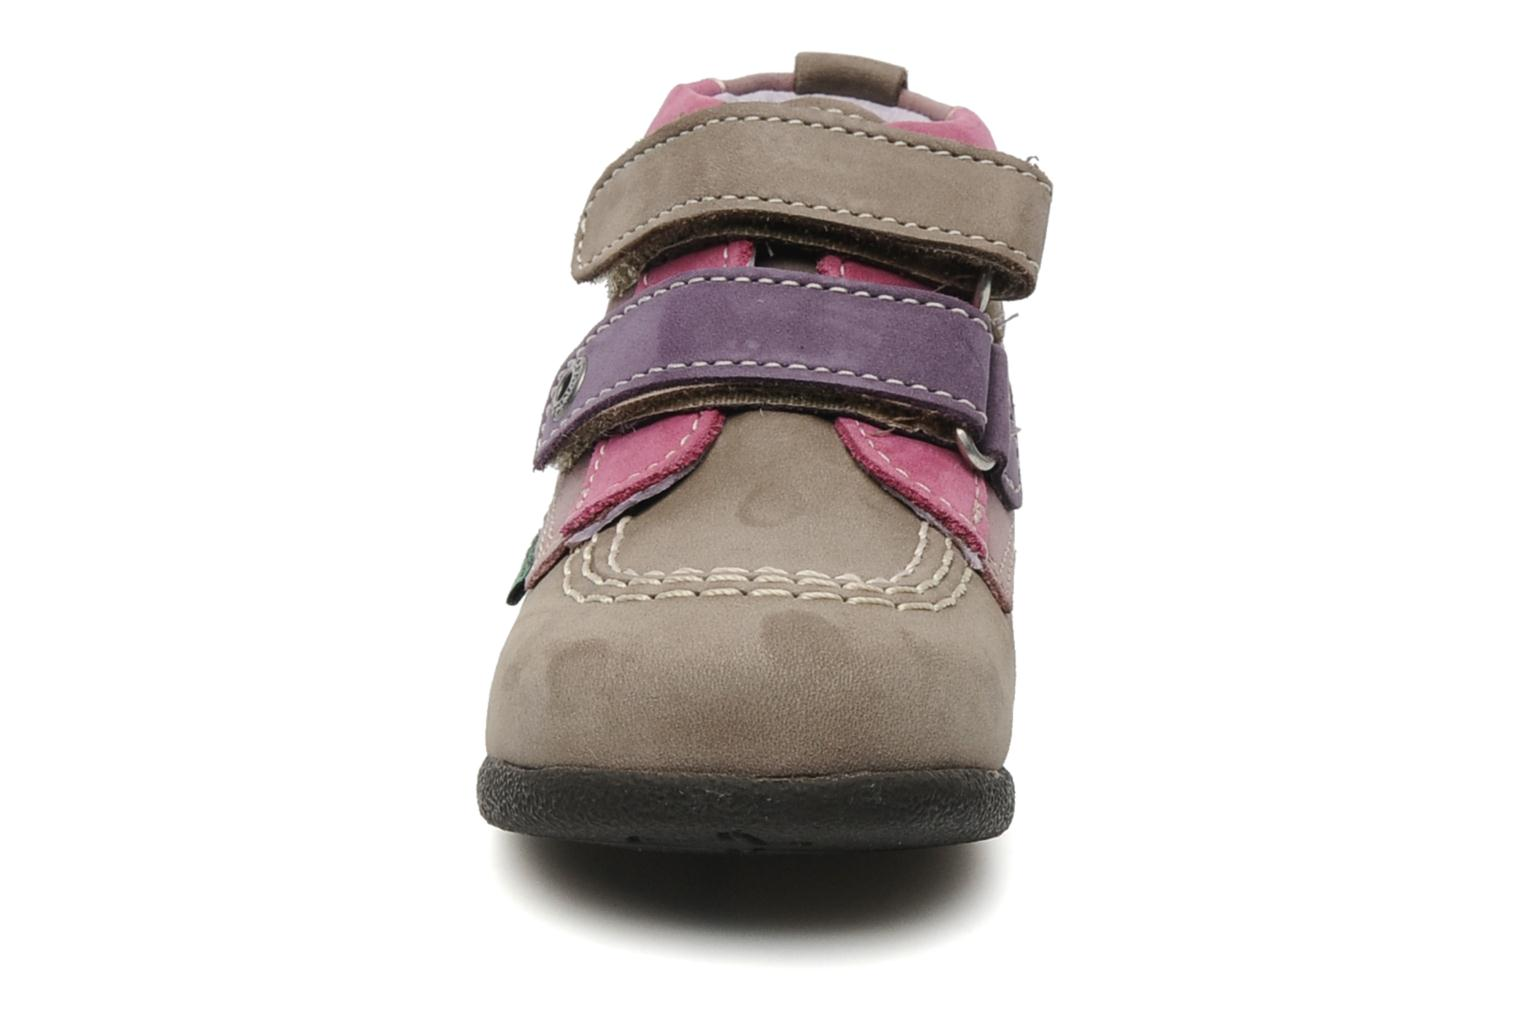 Sandals Infant Chaussures Fille Bebe Sarenza ~ QdxBCeroWE